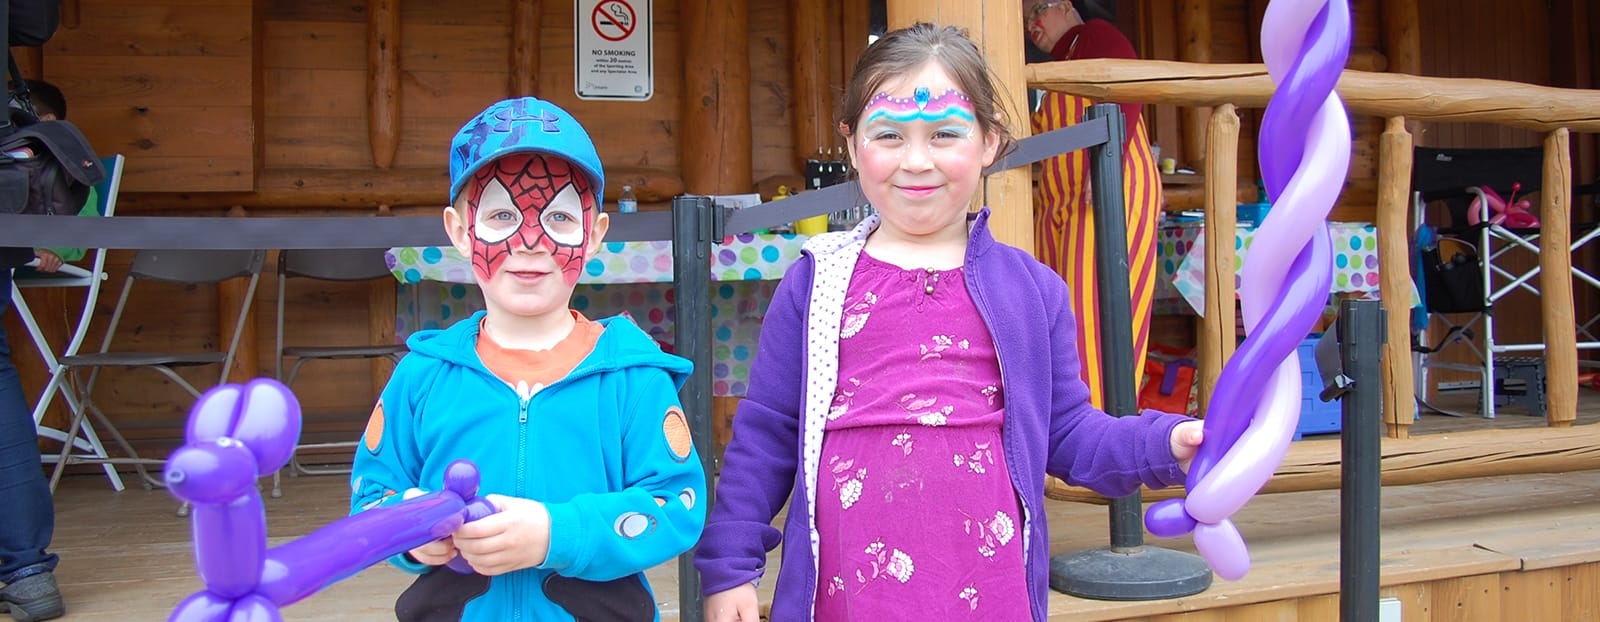 kids with painted faces and balloon animals